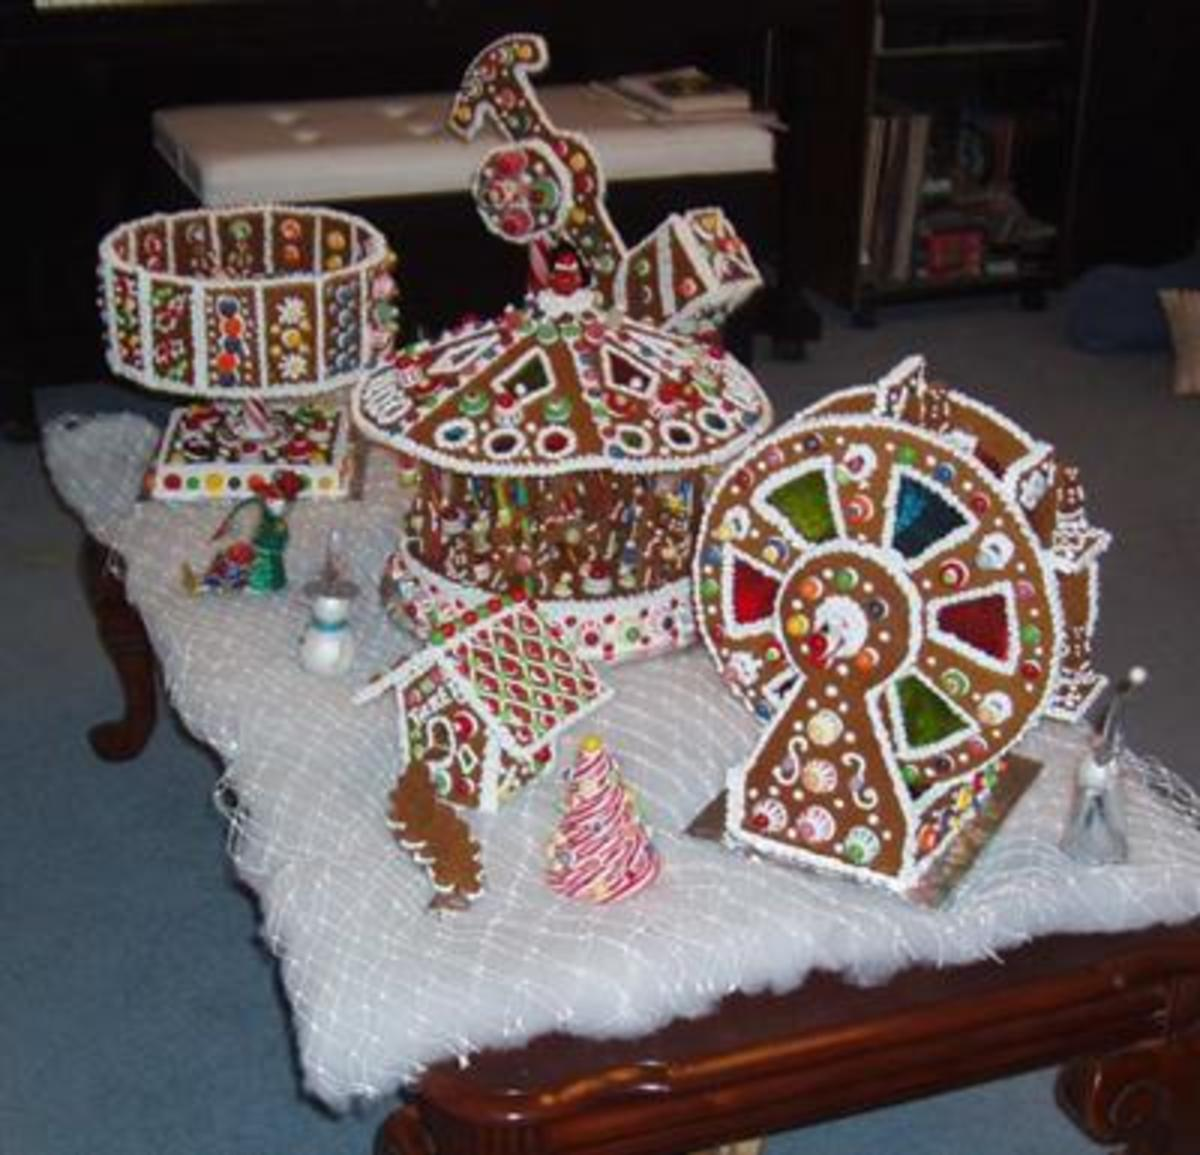 A carnival made of gingerbread!